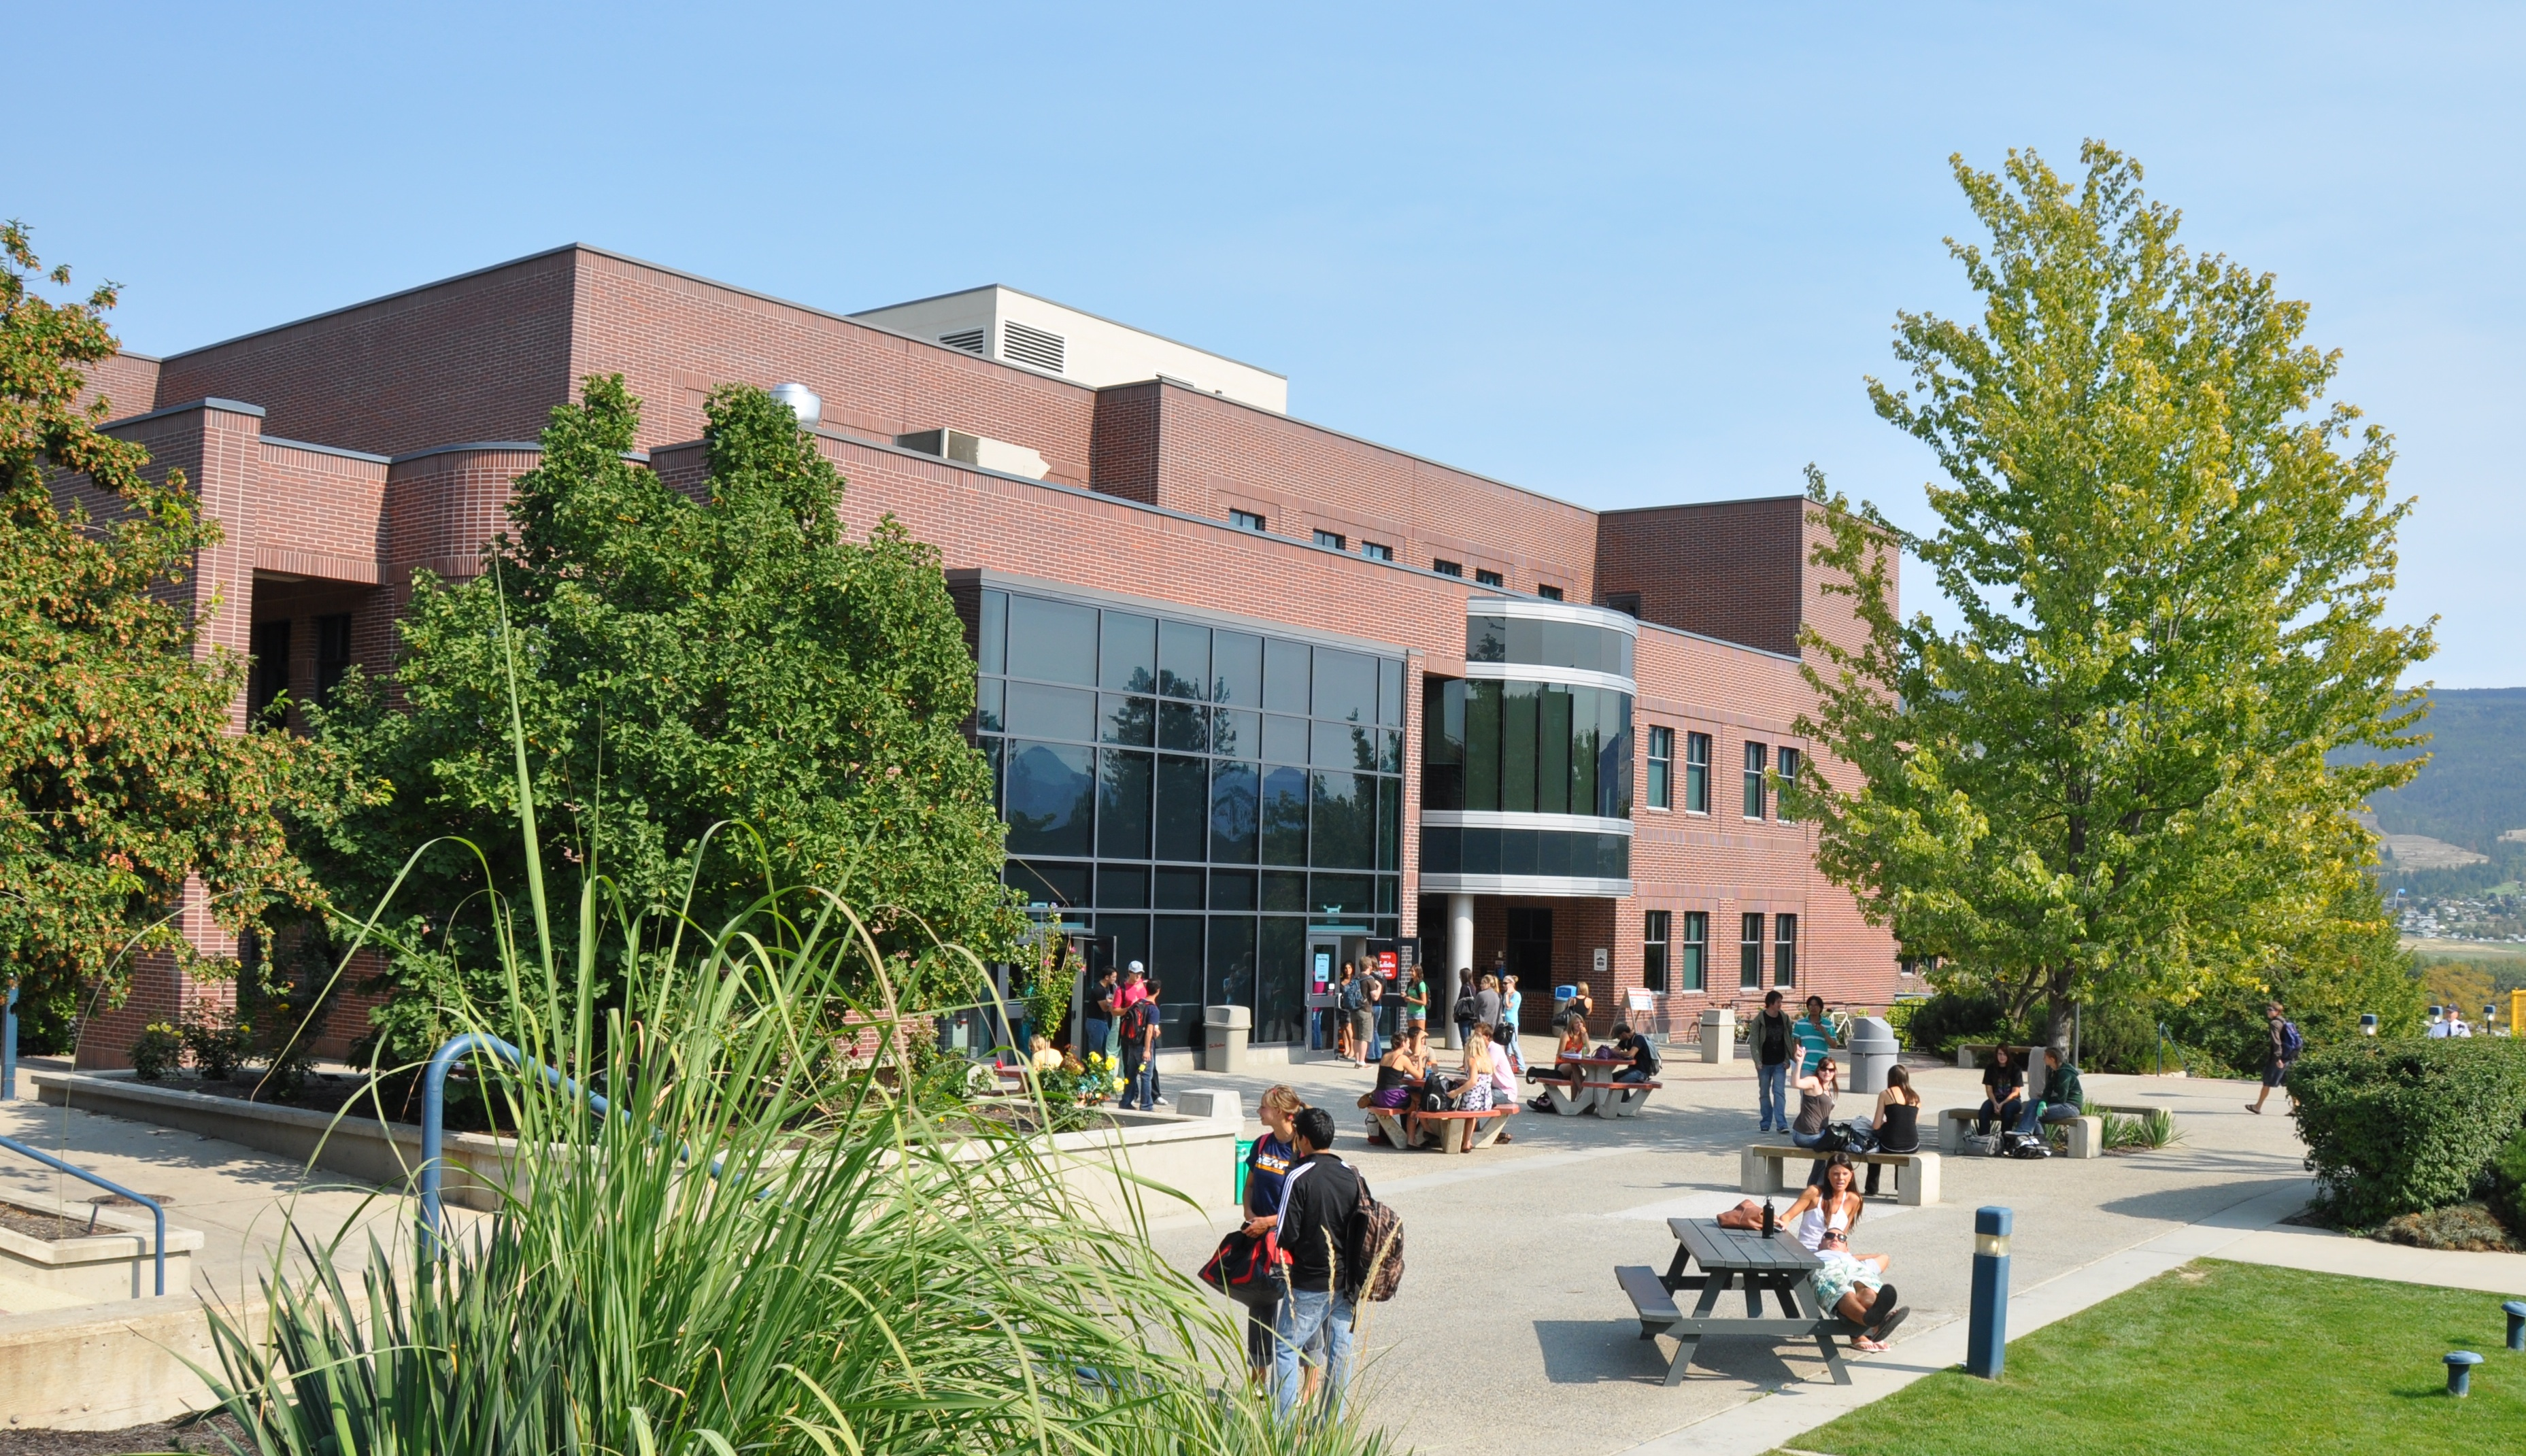 university of kansas thesis The university of missouri-kansas city (umkc), one of four university of missouri campuses, is a public university serving more than 14,000 undergraduate, graduate and professional students.